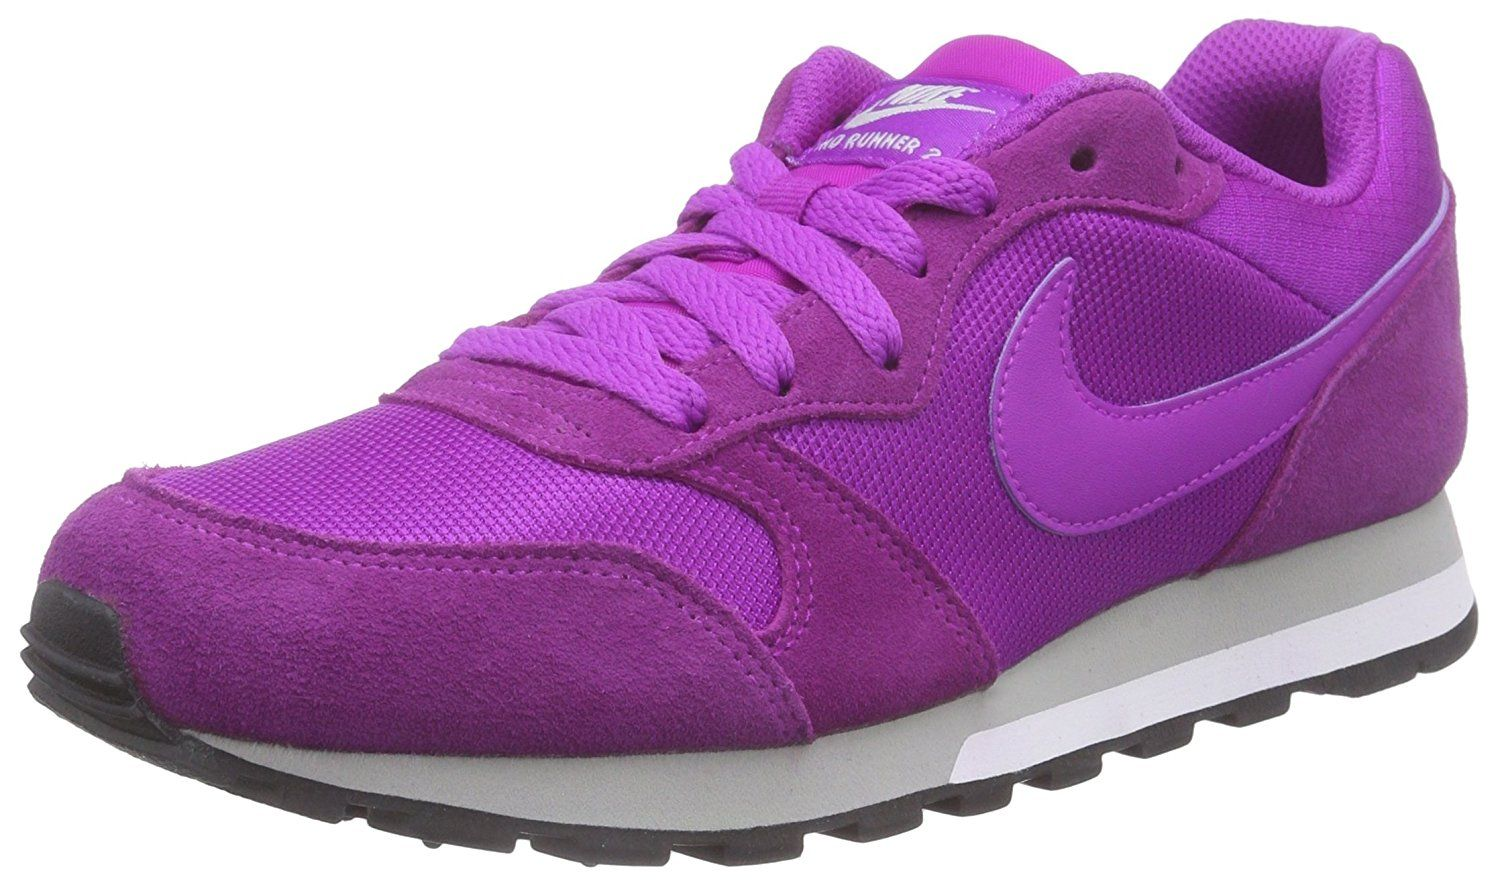 outlet store a764a 17d38 tenis nike para mujer, tenis nike mujer blancos, tenis nike mujer negro,  zapatos